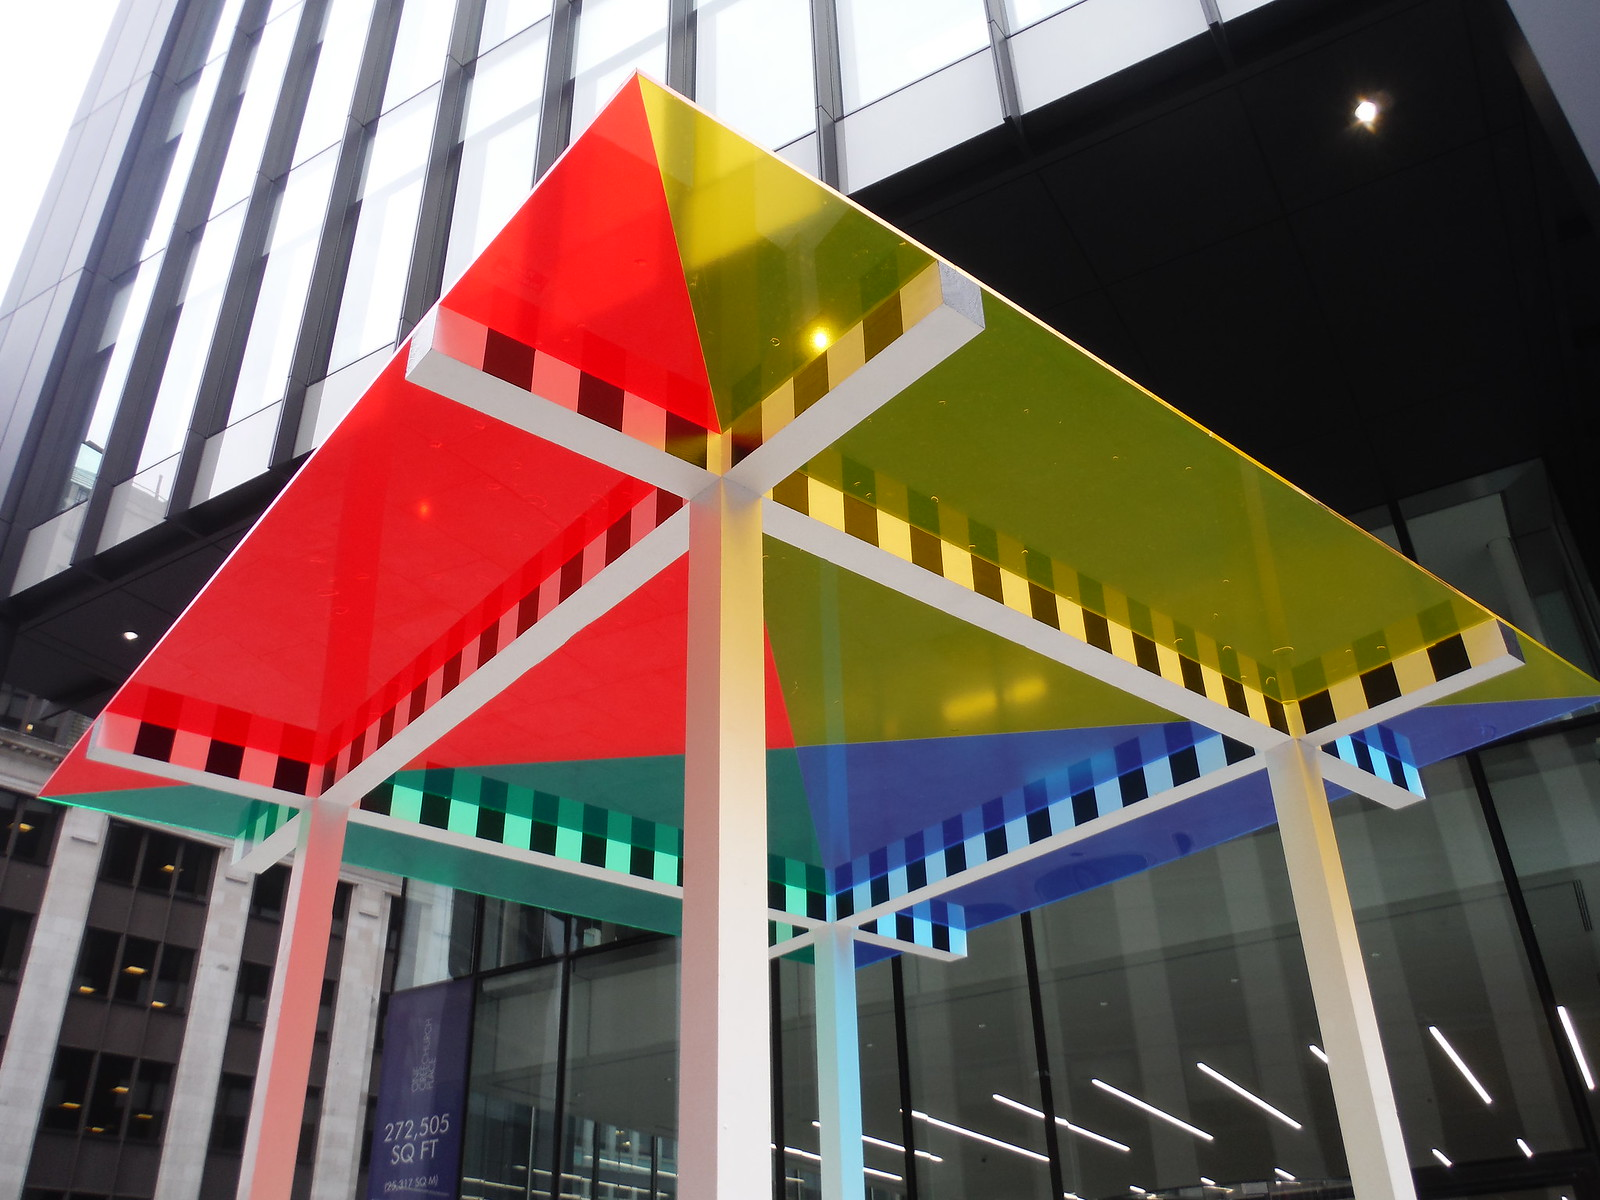 Daniel Buren - 4 Colours at 3 Meters High Situated Work SWC Walk Short 24 - Sculpture in the City